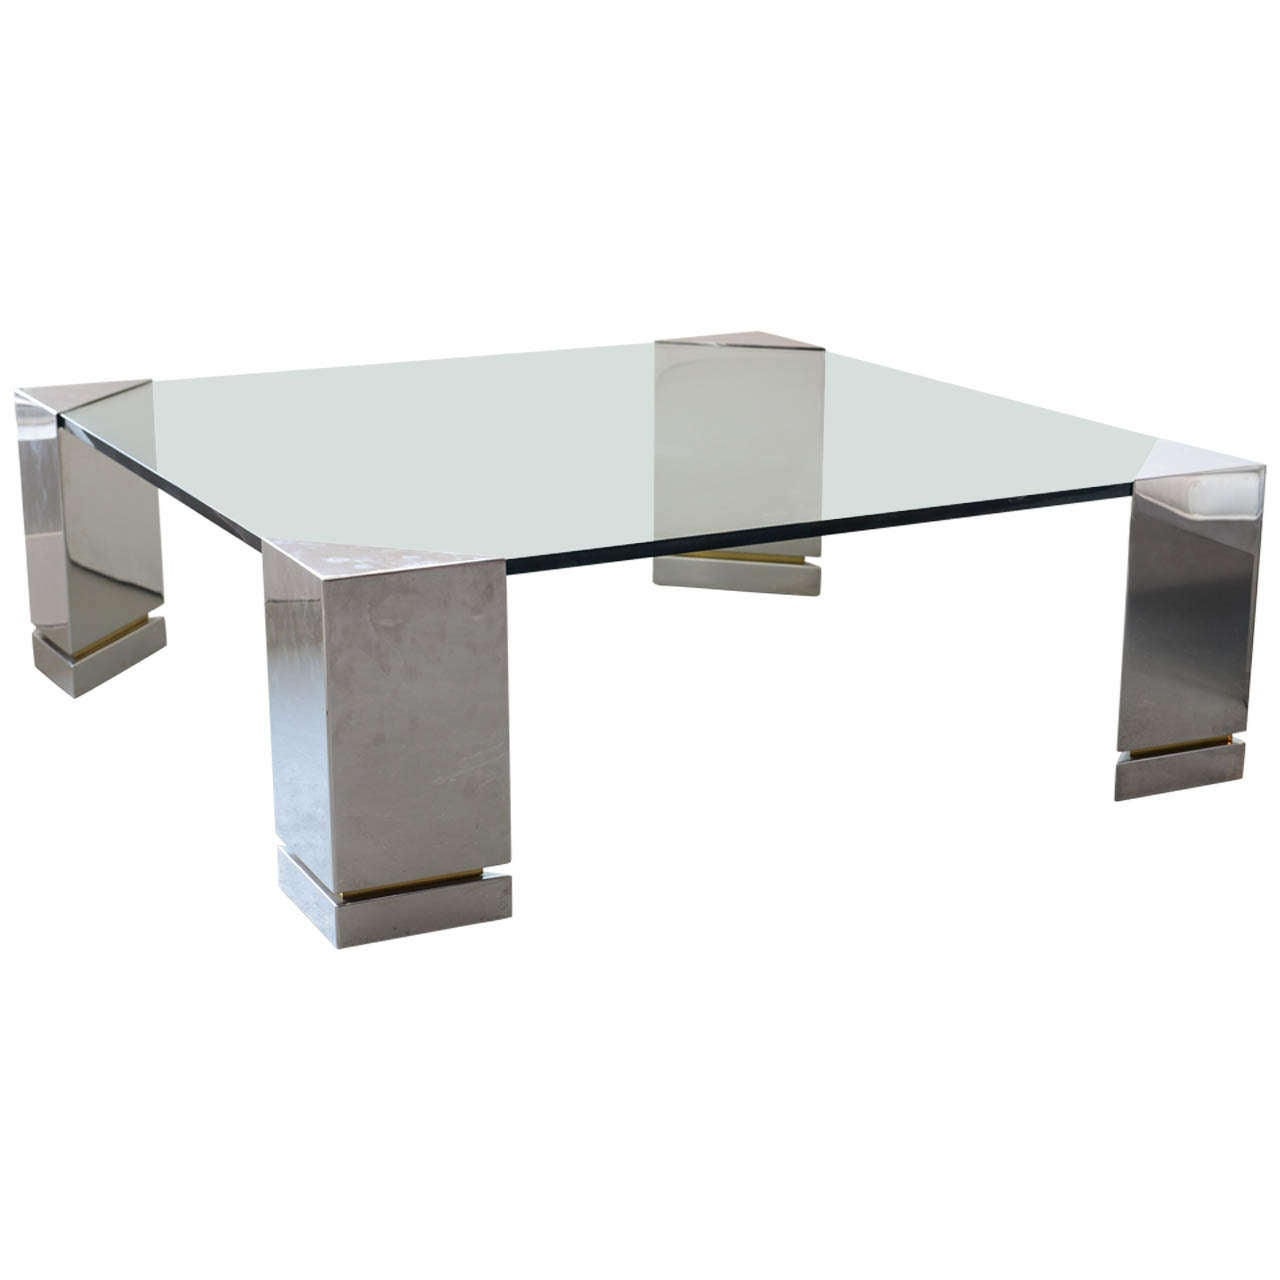 Brueton Polished Chrome and Glass Low Table, USA